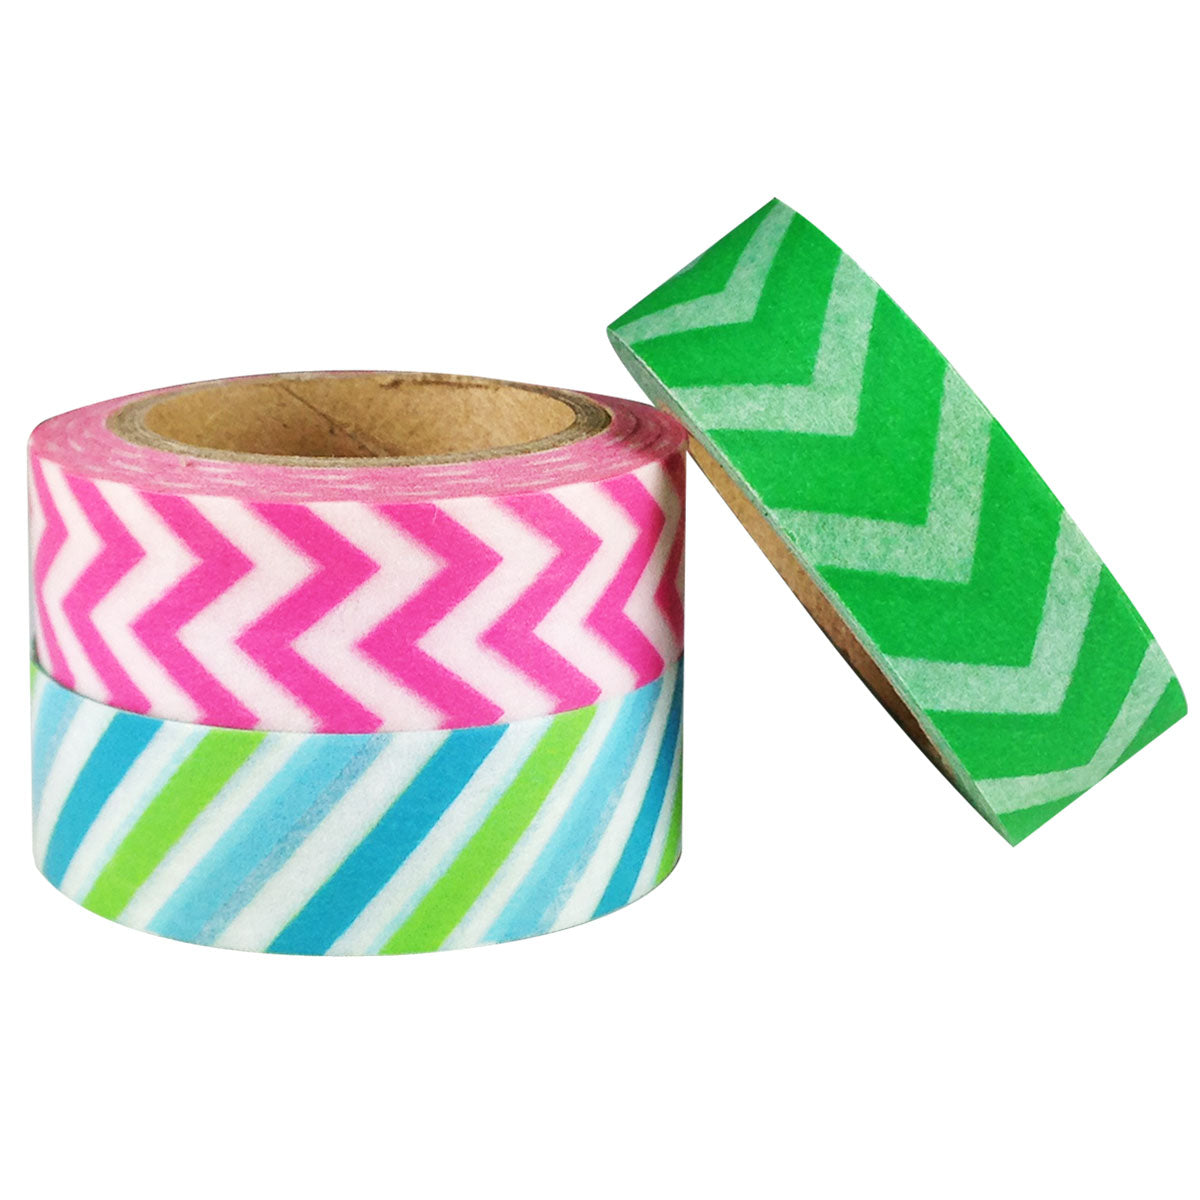 Wrapables Colorful Lines Japanese Washi Masking Tape (Set of 3)